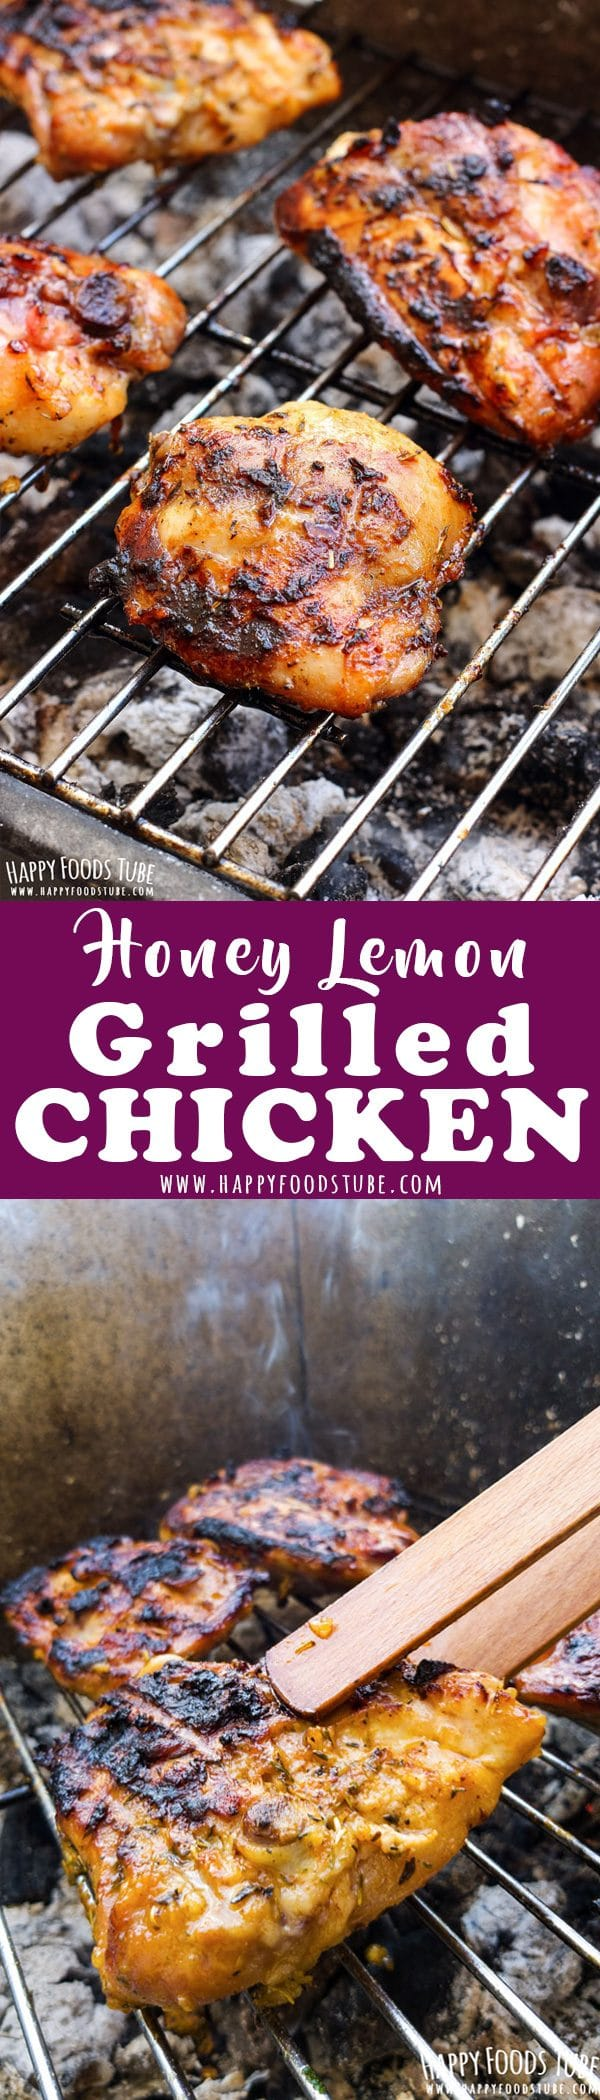 Honey Lemon Grilled Chicken Recipe Picture